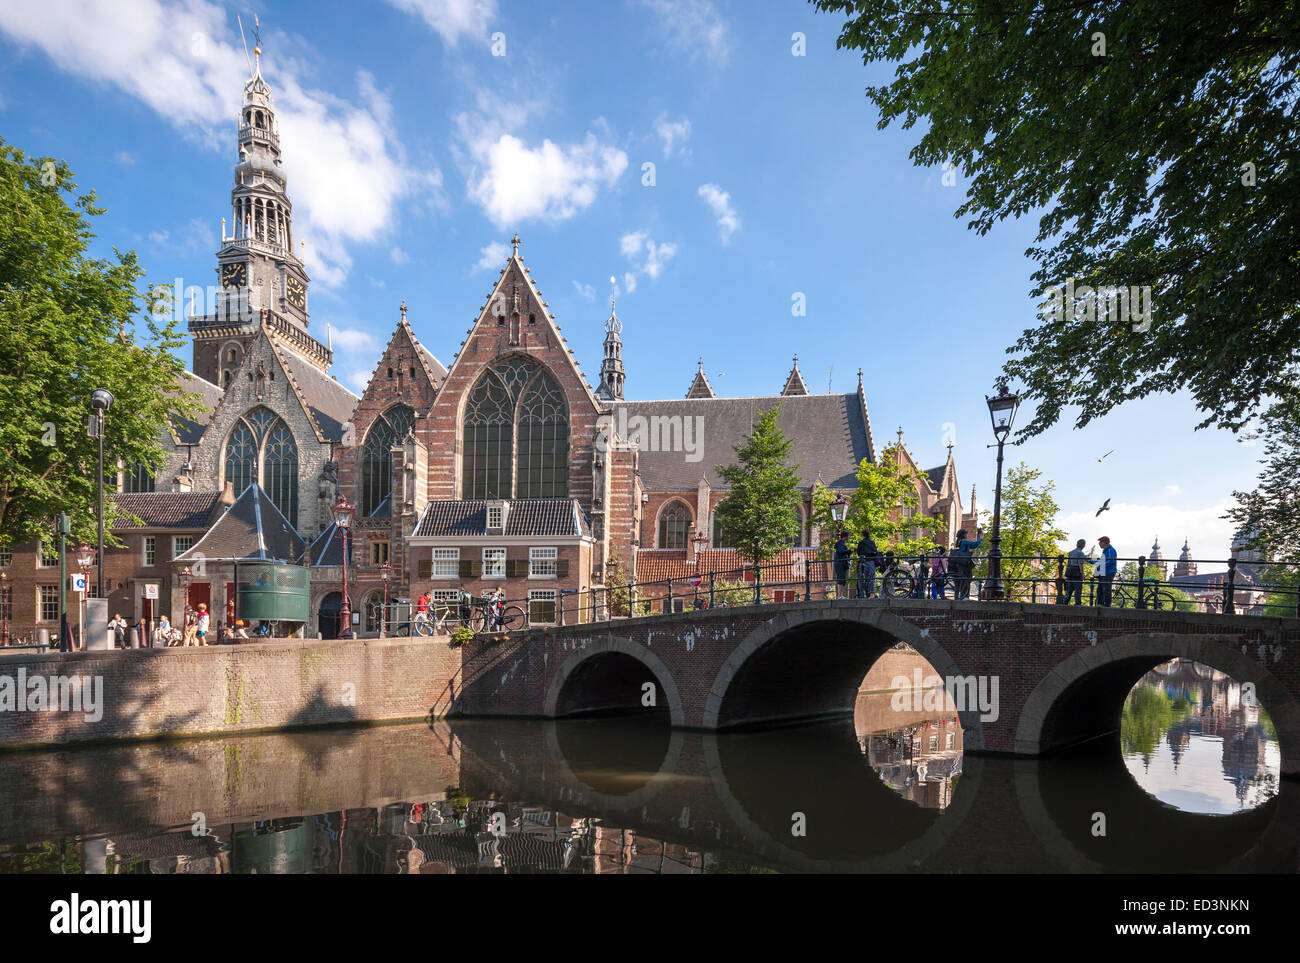 https://c7.alamy.com/comp/ED3NKN/amsterdam-de-oude-kerk-the-old-church-with-oudekerksbrug-old-church-ED3NKN.jpg